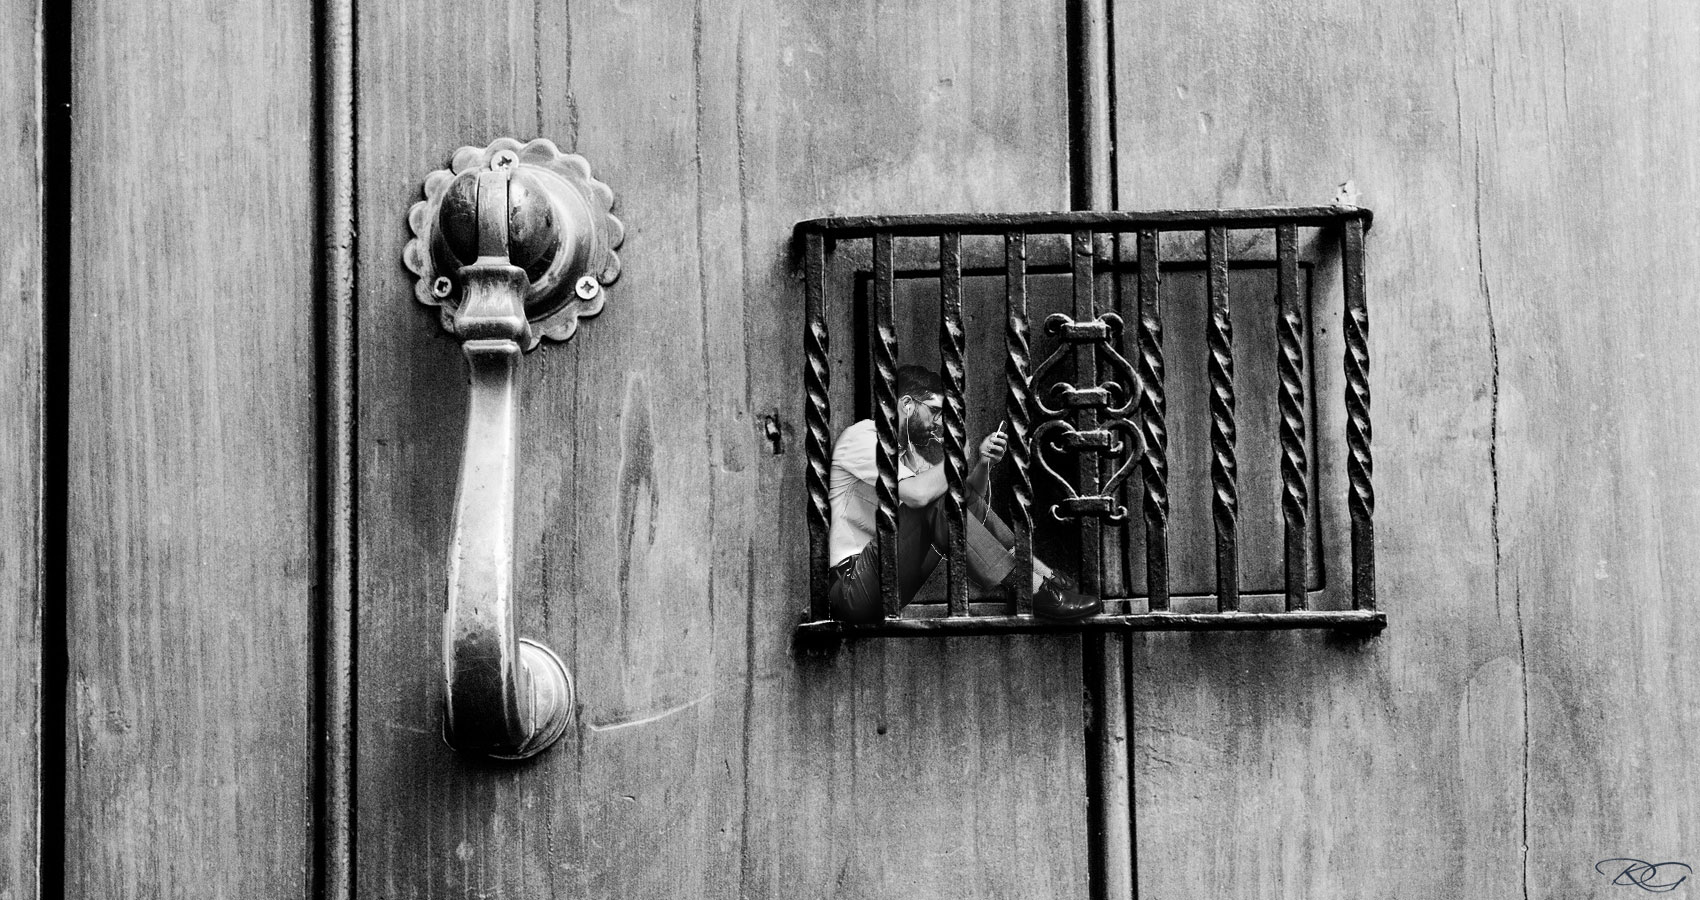 Knocking On The Madhouse Door by Aurora Kastanias at Spillwords.com